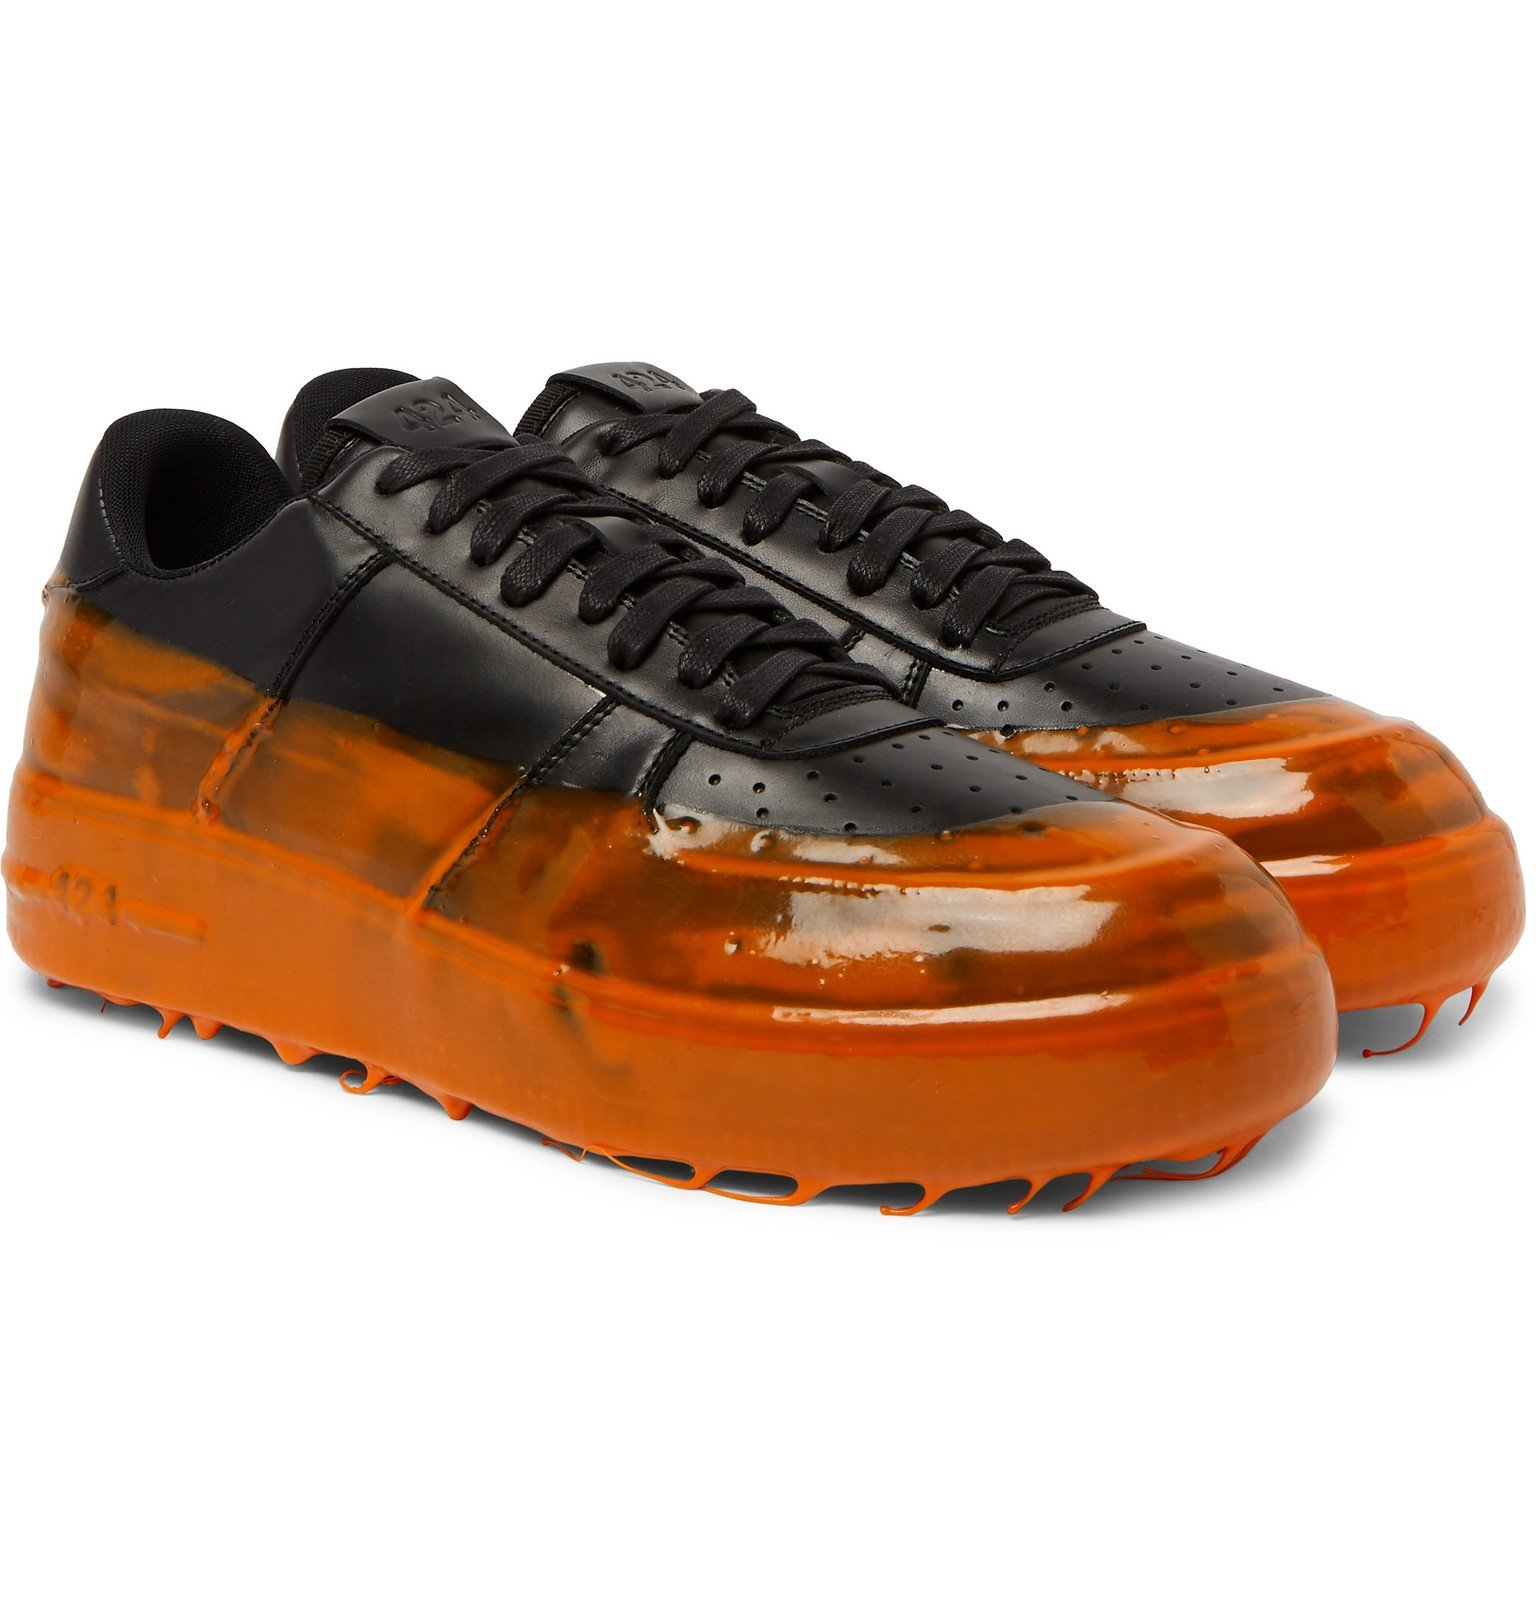 Photo: 424 - 42Force Rubber-Trimmed Leather Sneakers - Black